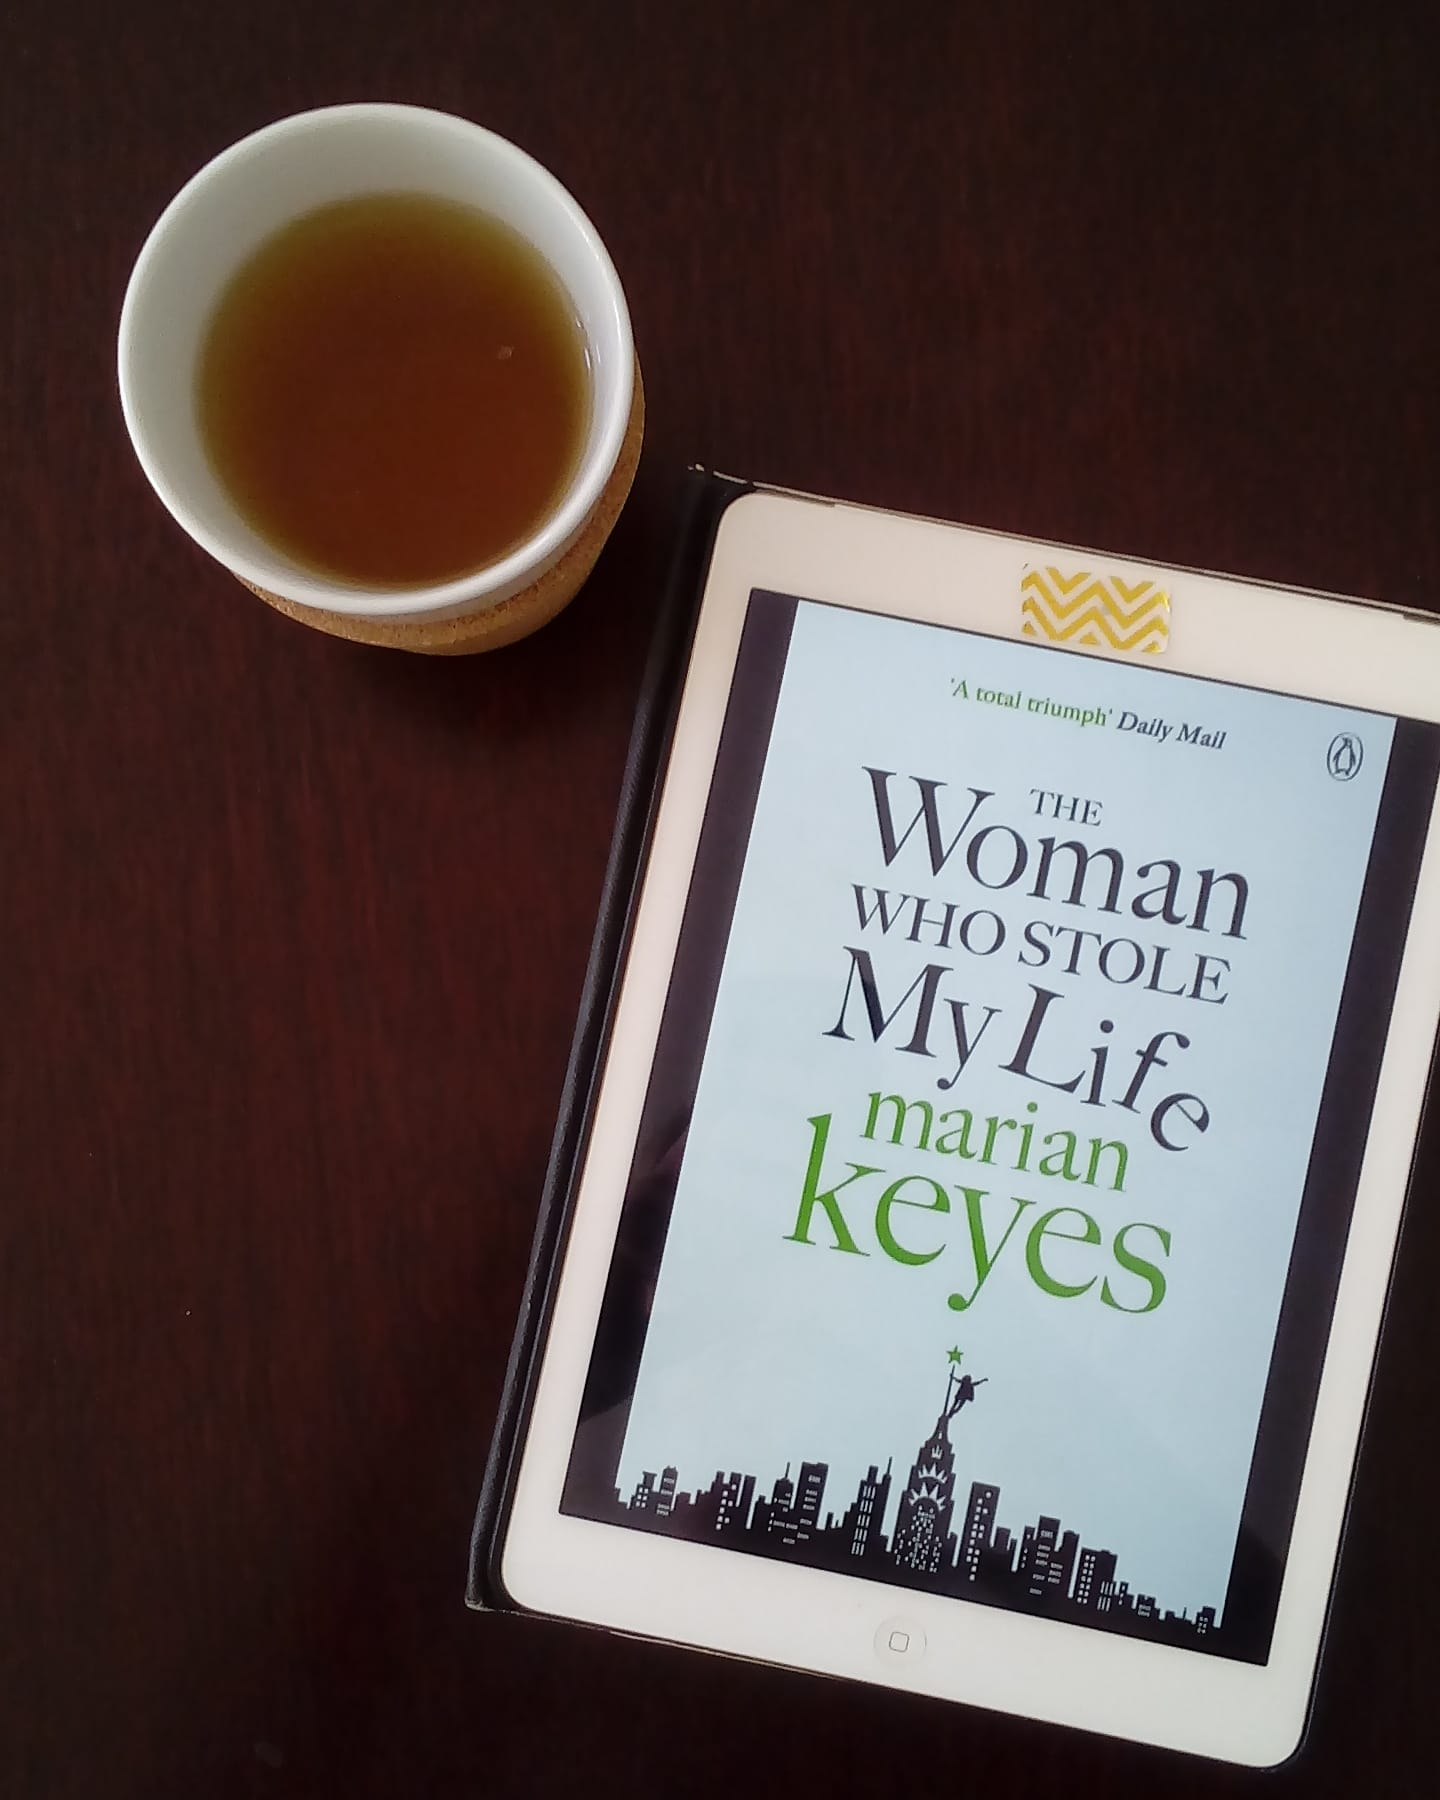 The woman who stole my life - Another Marian Keyes masterpiece!